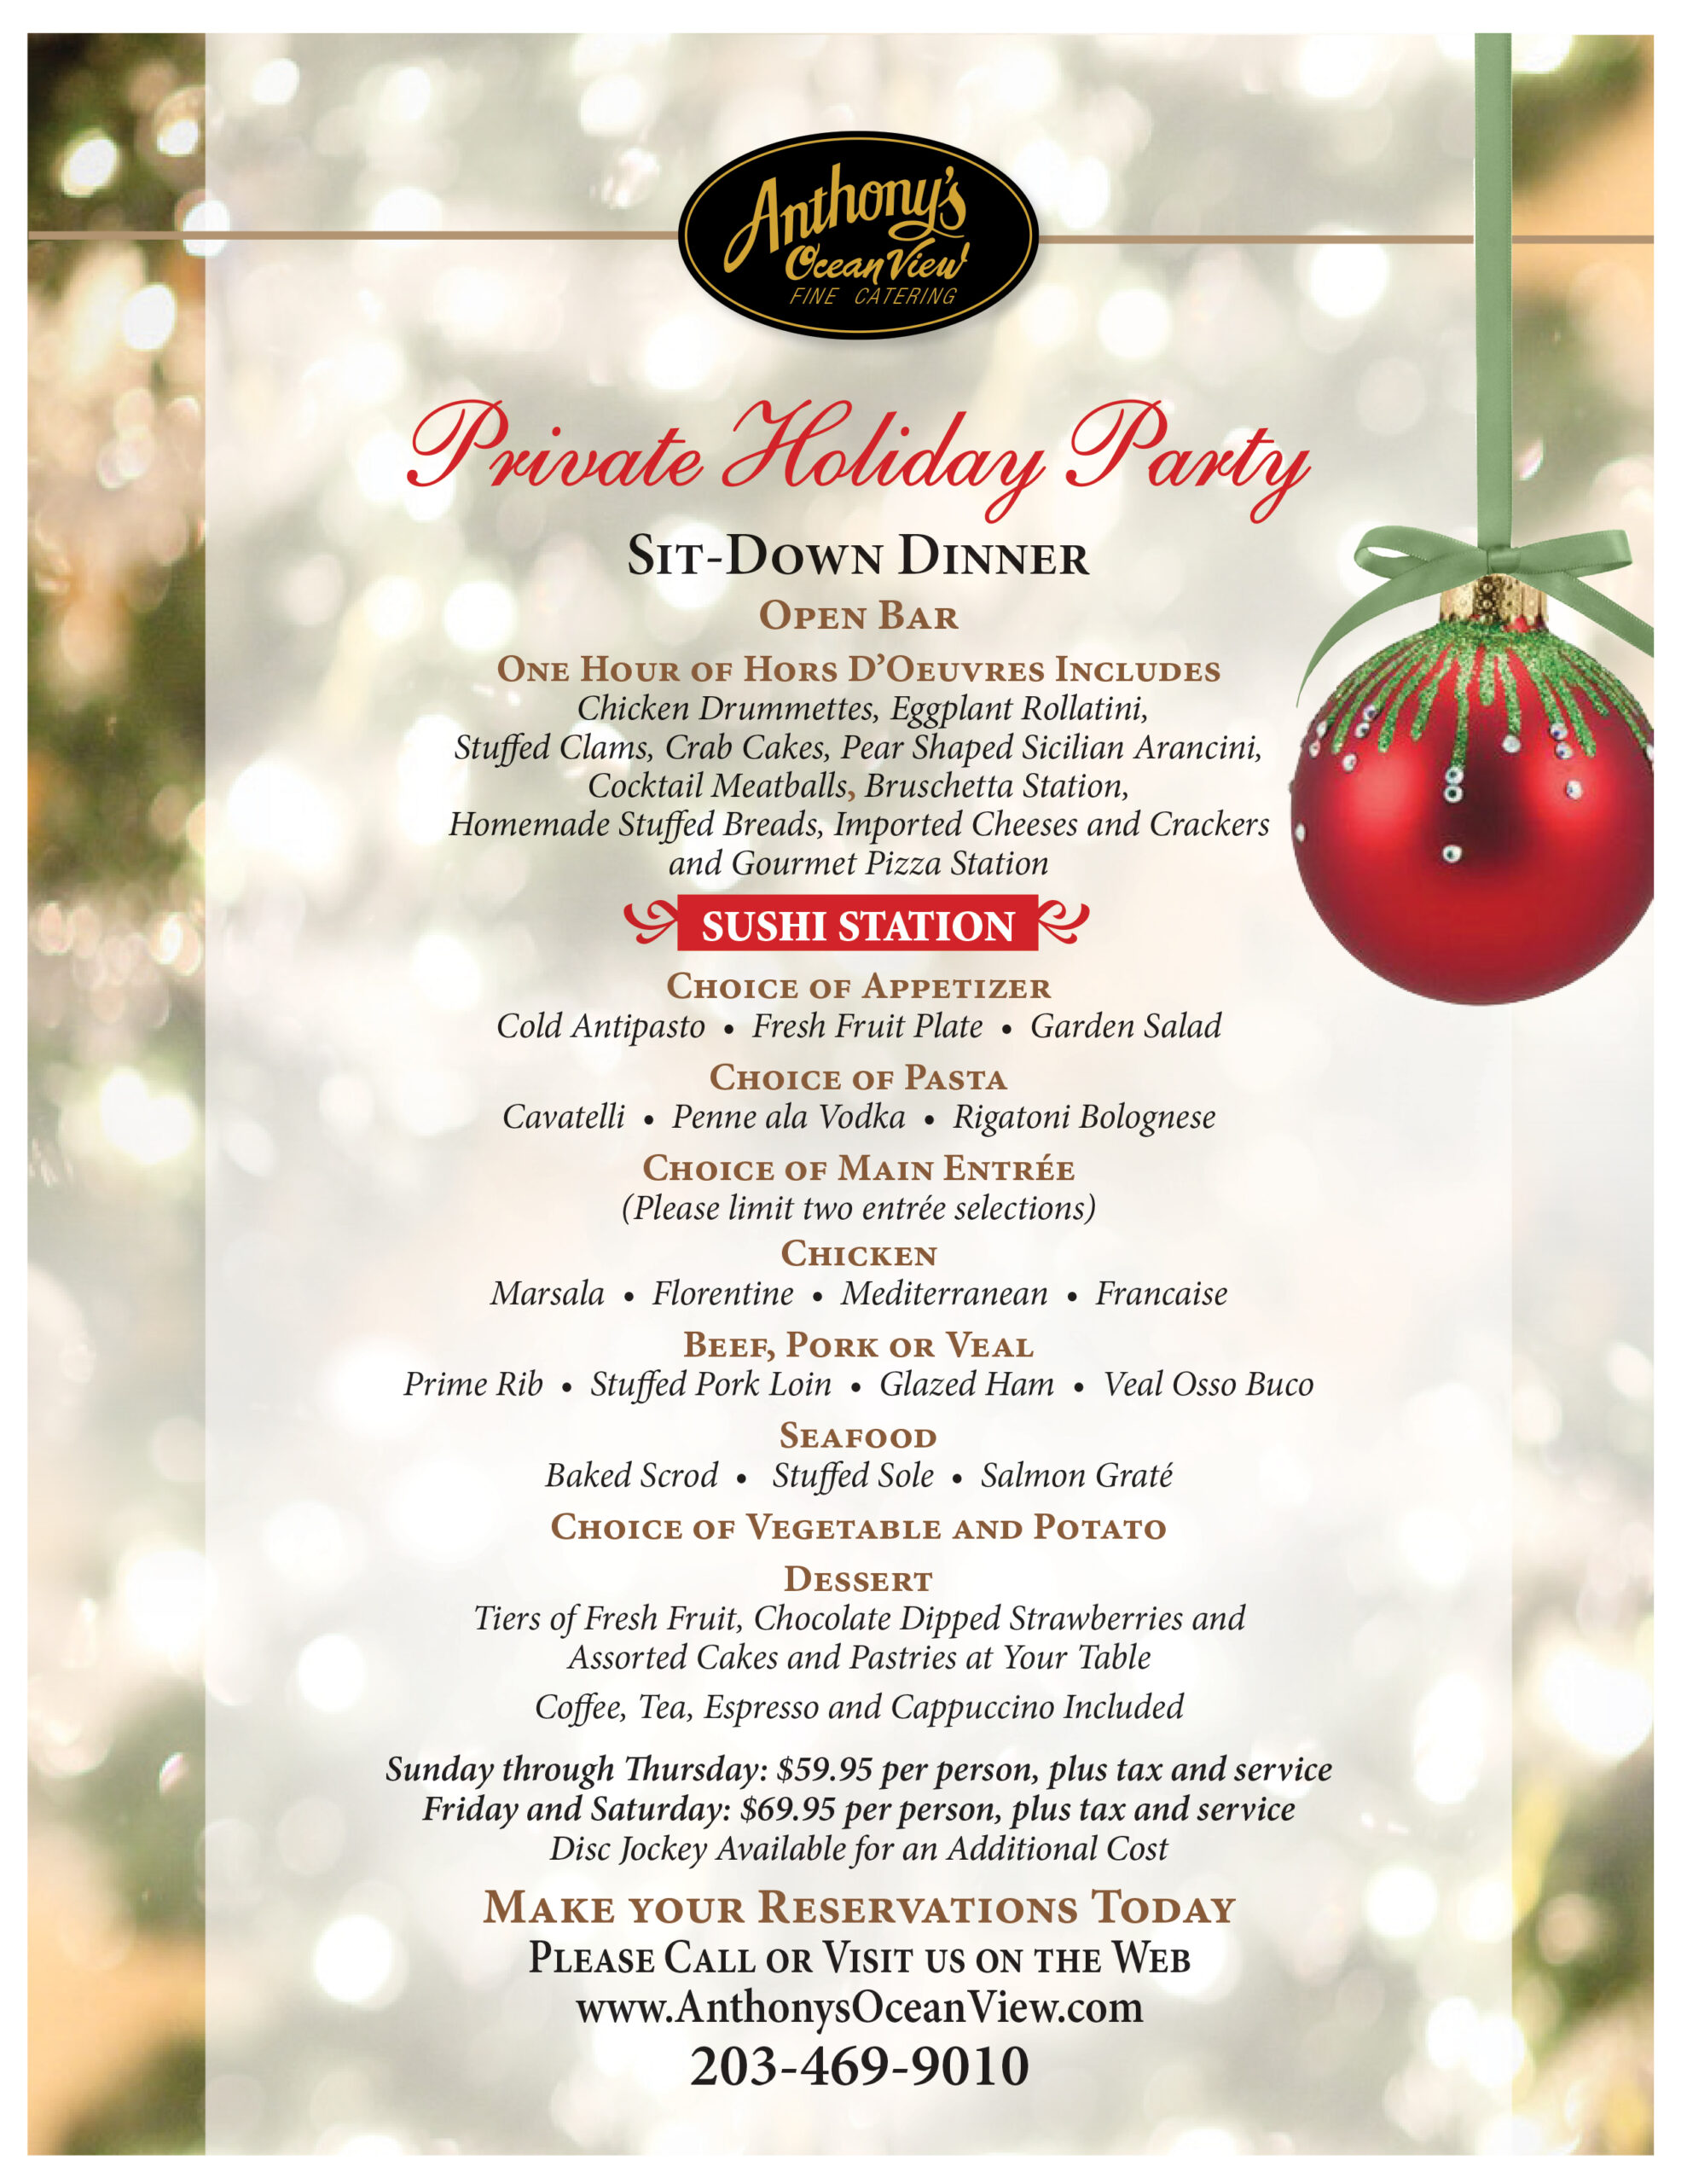 Holiday Parties, Connecticut Shorline, New Haven, Christmas Events